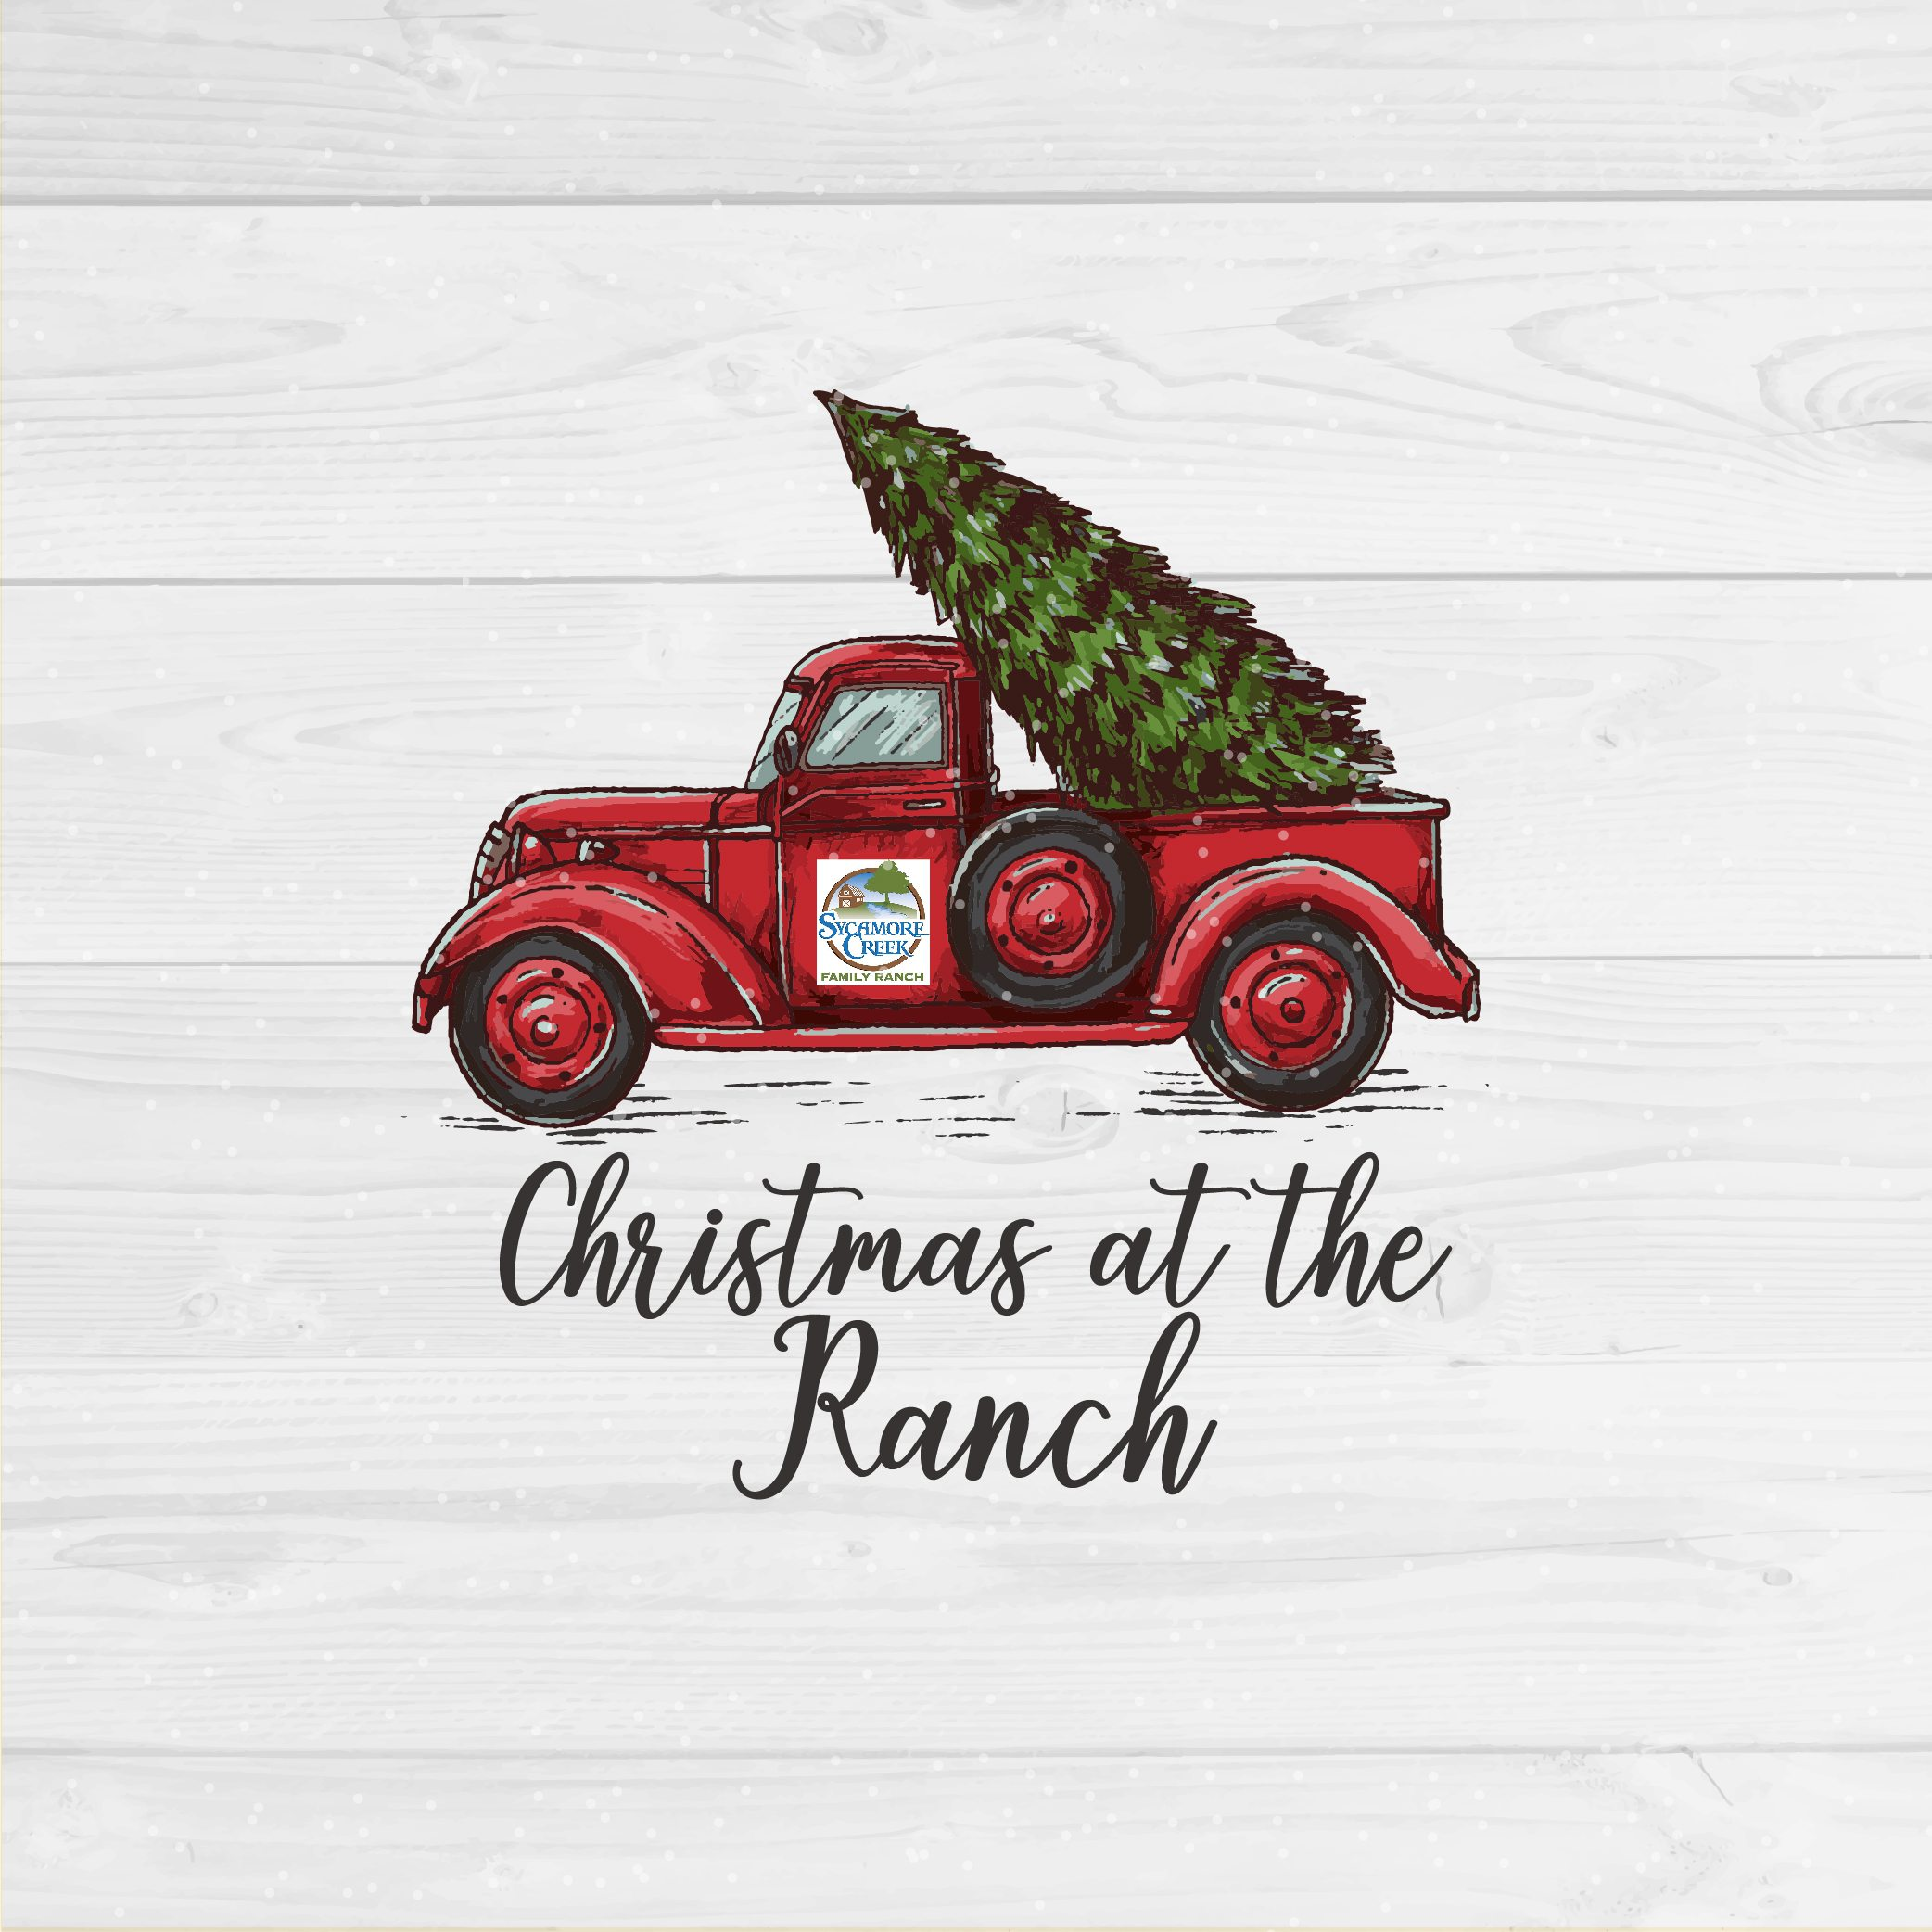 Ranch style Christmas celebration in Springfield, MO